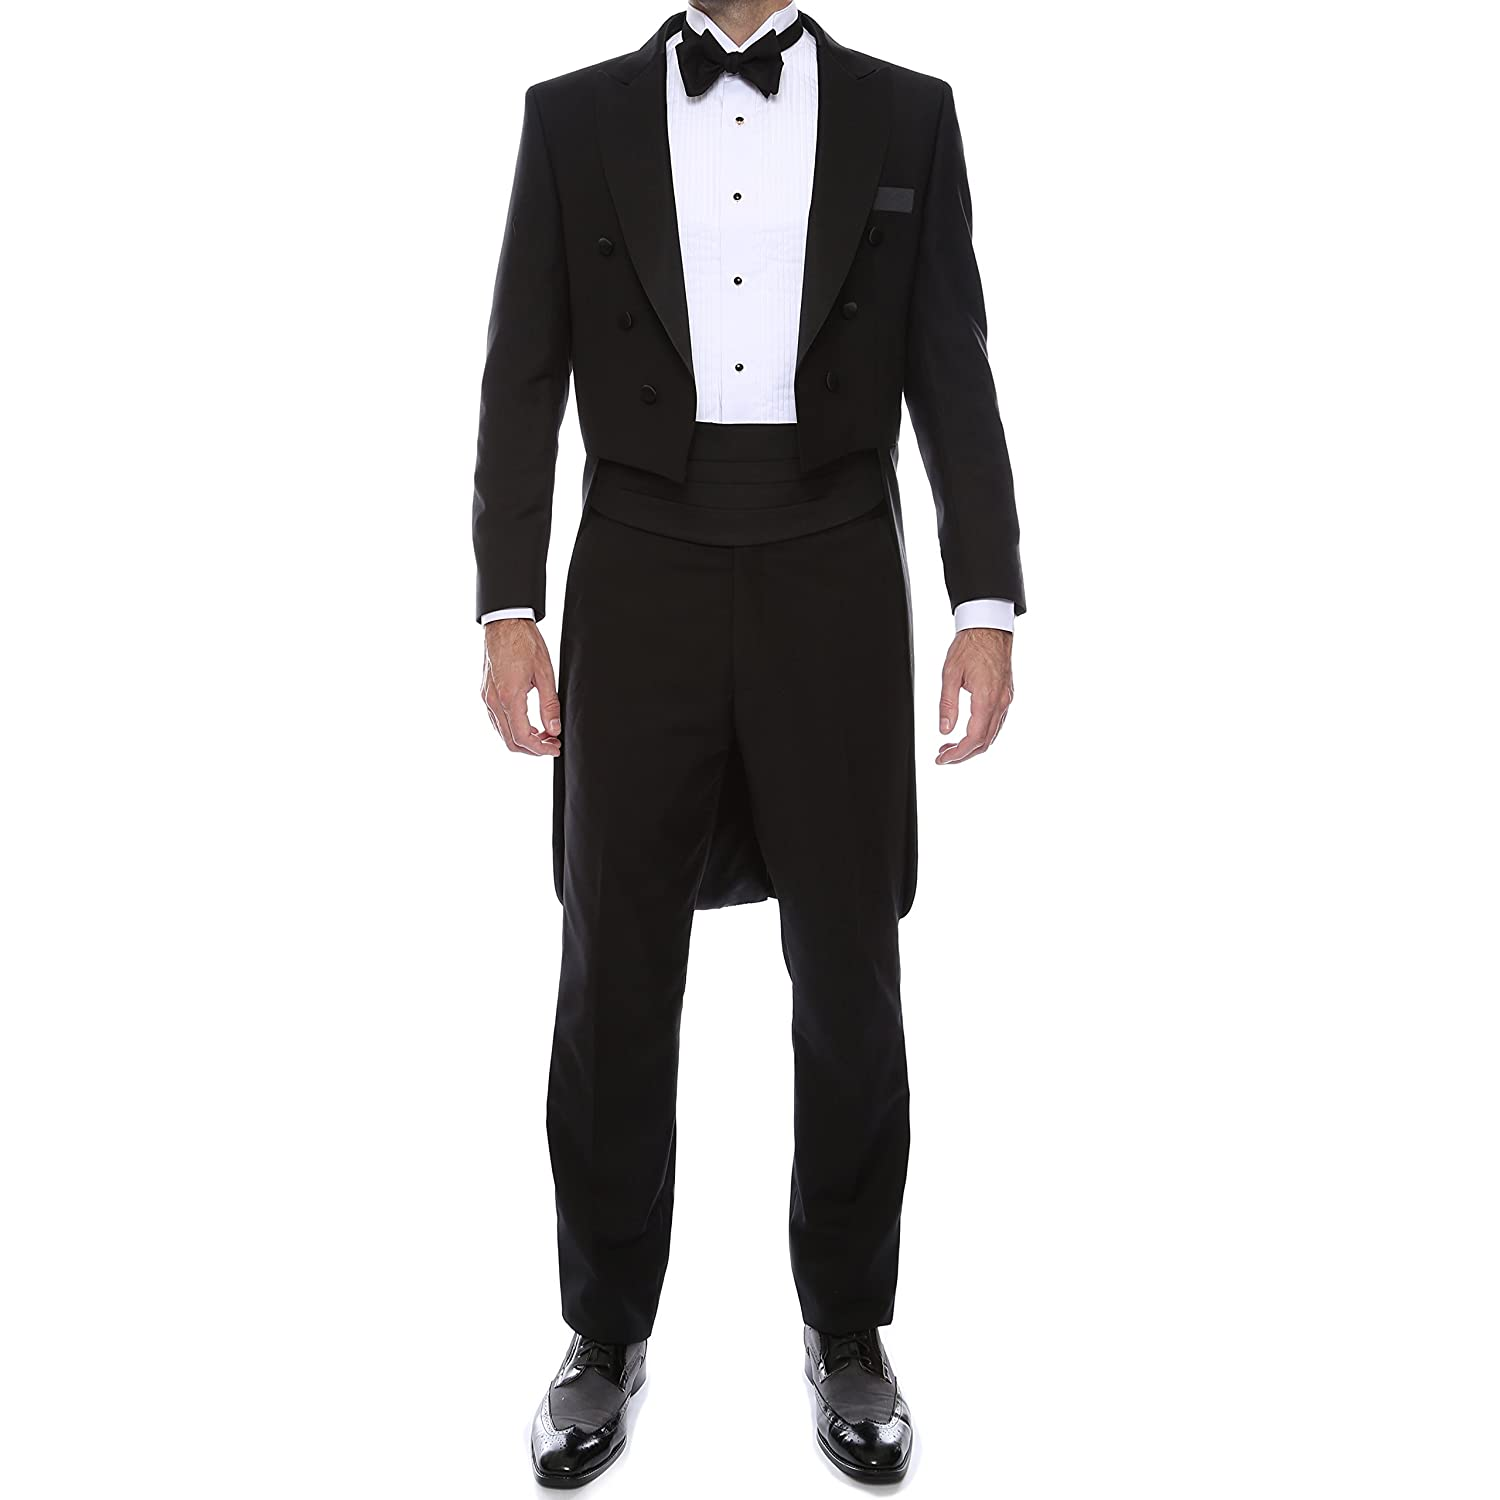 Victorian Men's Tuxedo, Tailcoats, Formalwear Guide Ferrecci Premium Mens 2pc Victorian Tail Tuxedo - Tailcoat & Slacks $109.75 AT vintagedancer.com